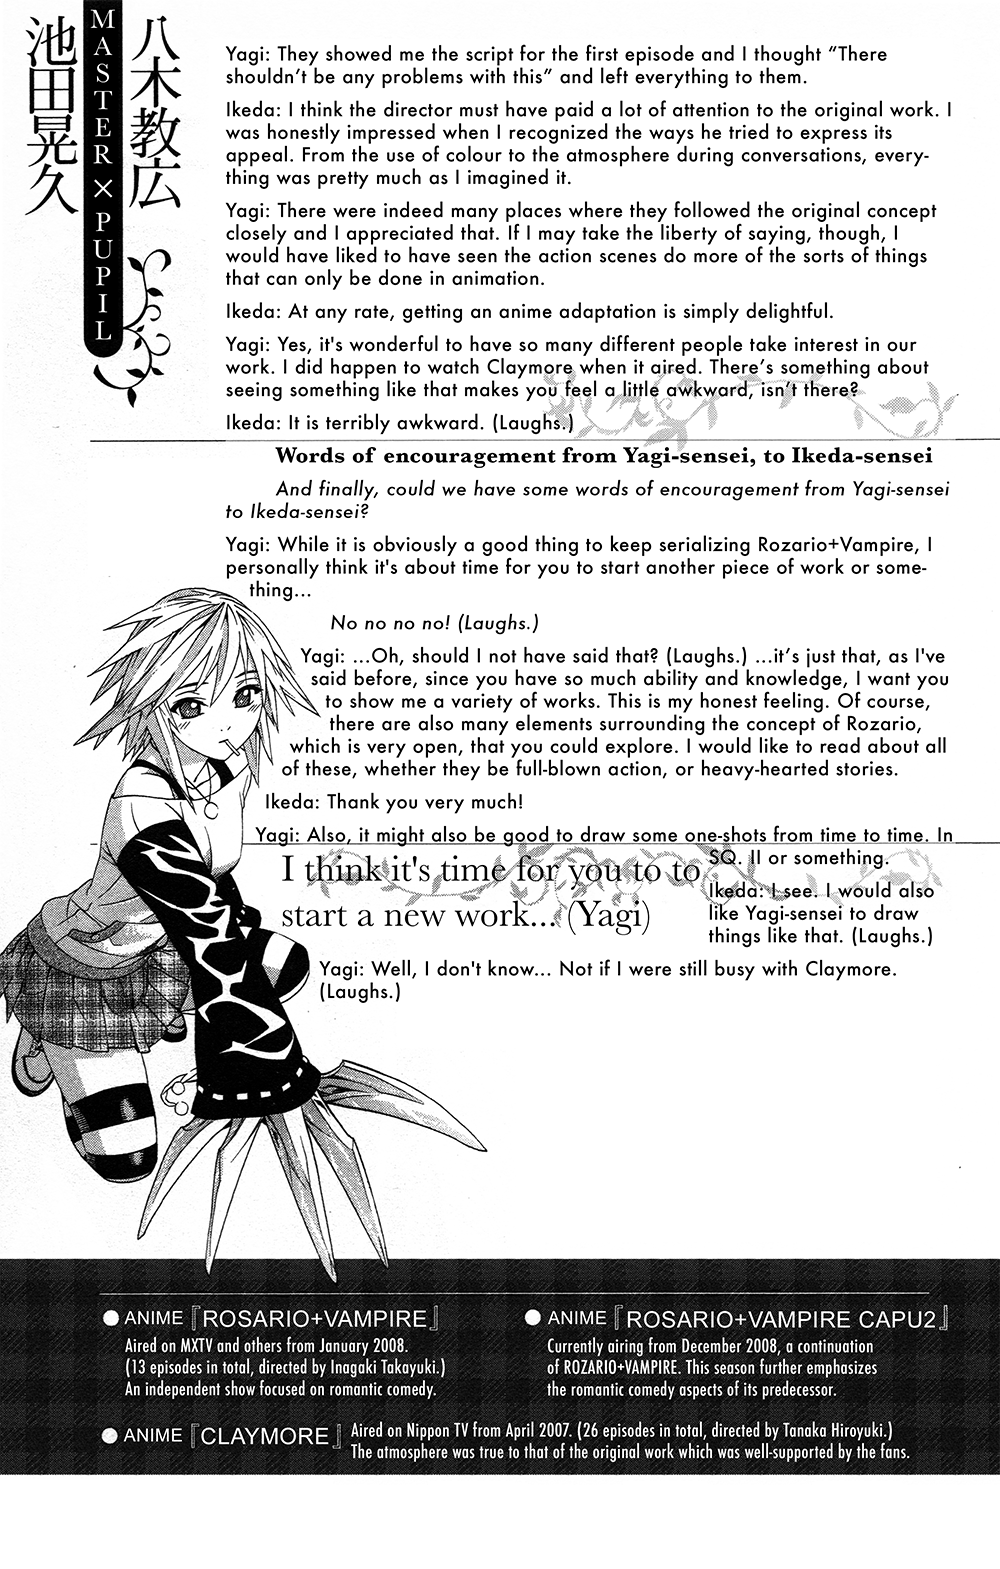 Meaning Of See The Little Works Bio Yagi On Page 3 That Was Me Took Like An Hour And I Got Stuck Ikeda One Next Up Databooks